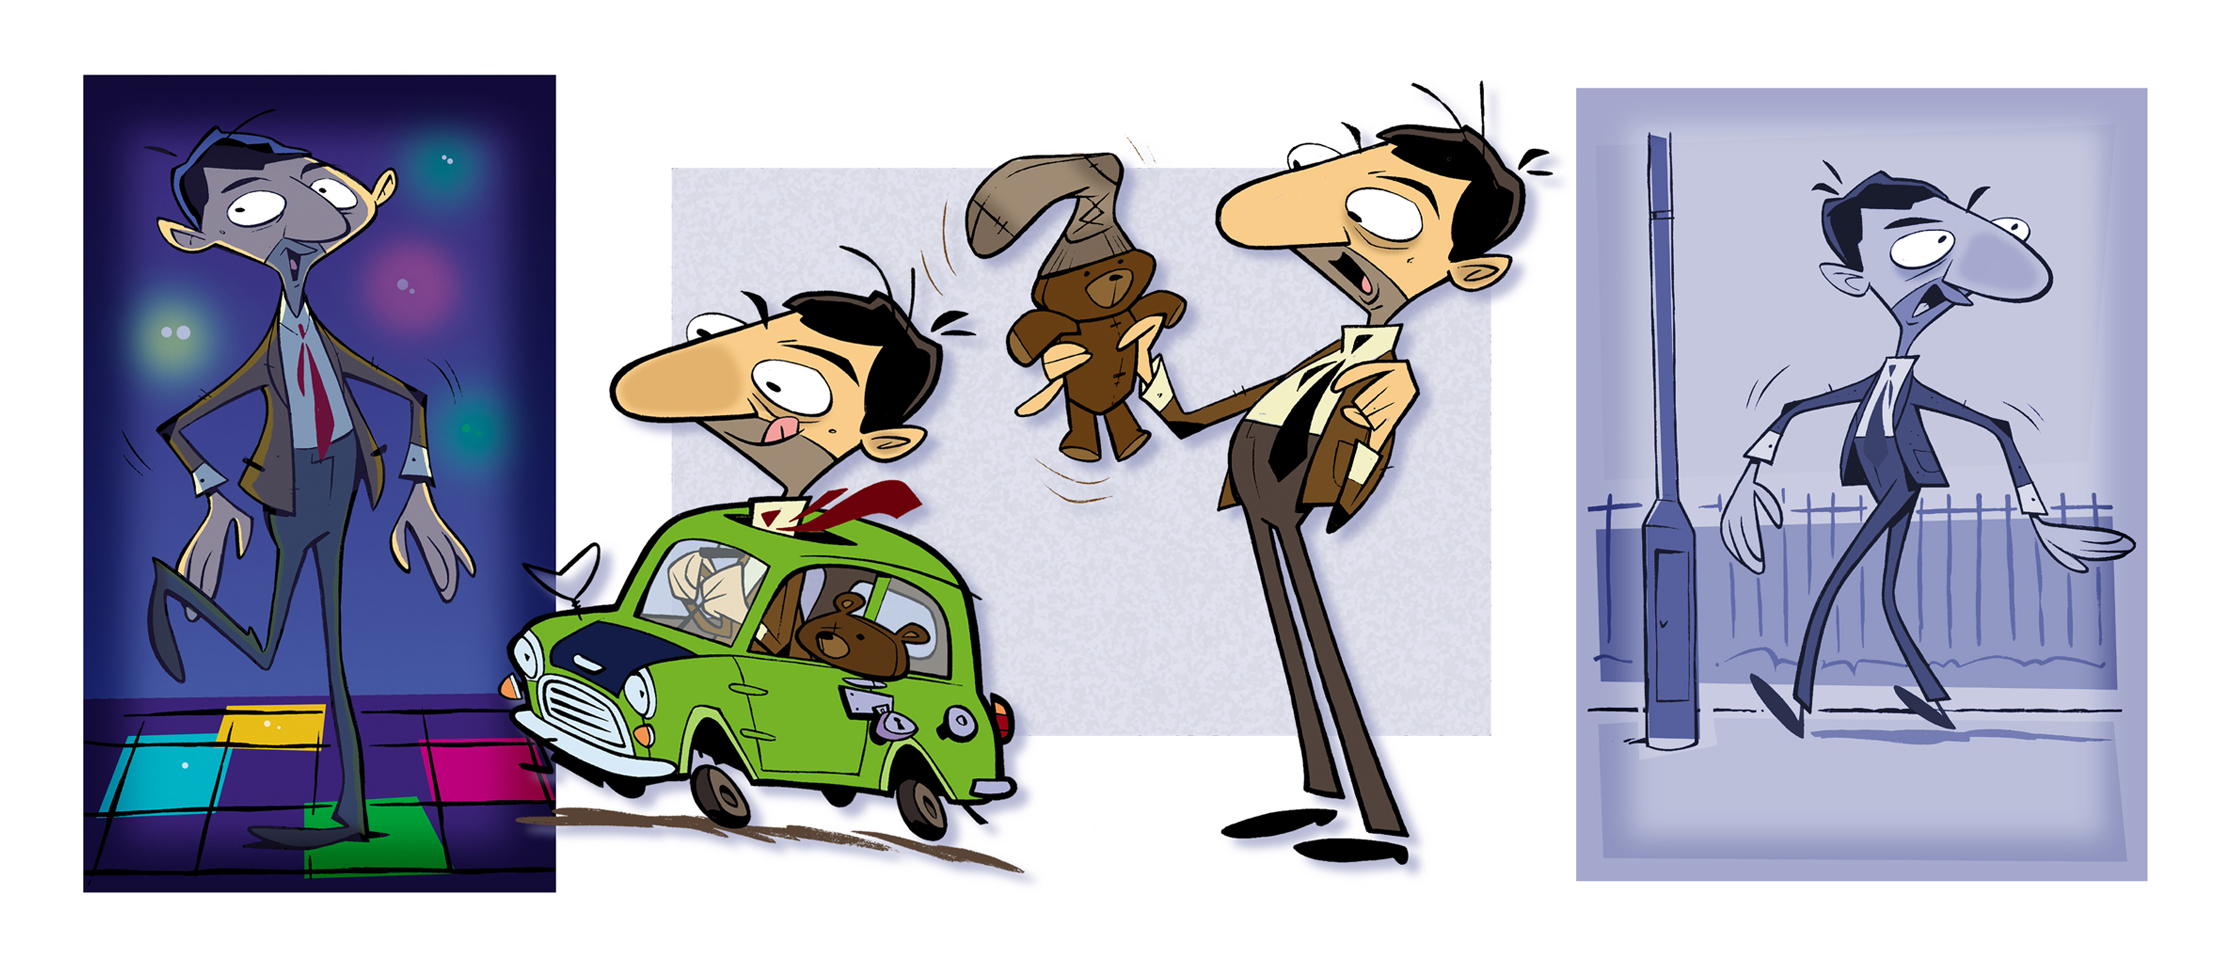 mr bean tv series pitch art